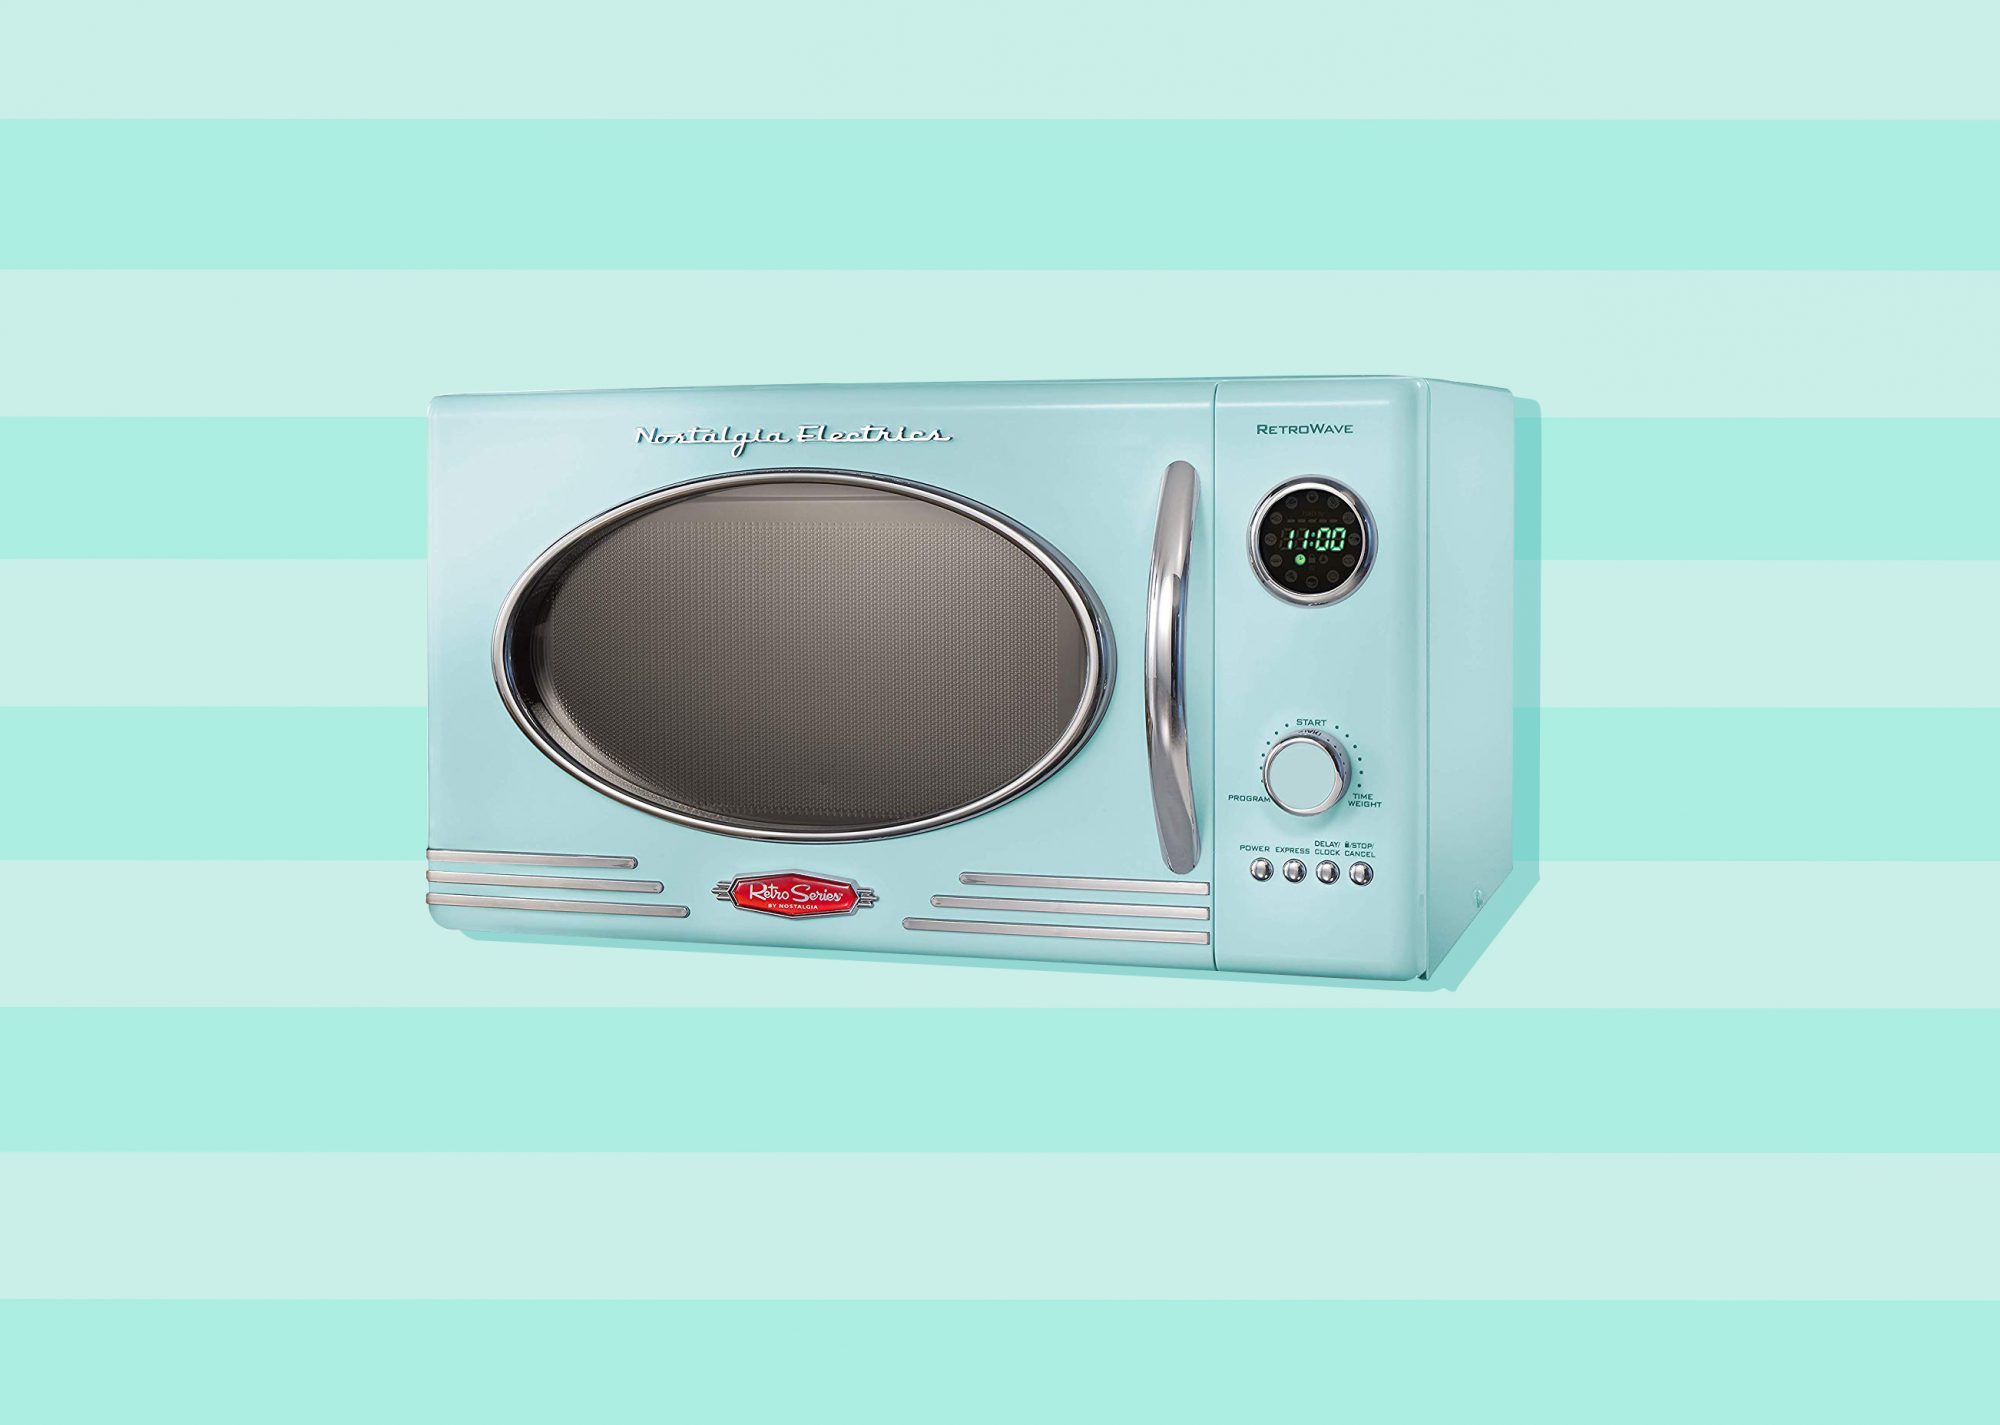 Stylish Microwaves and Toaster Ovens